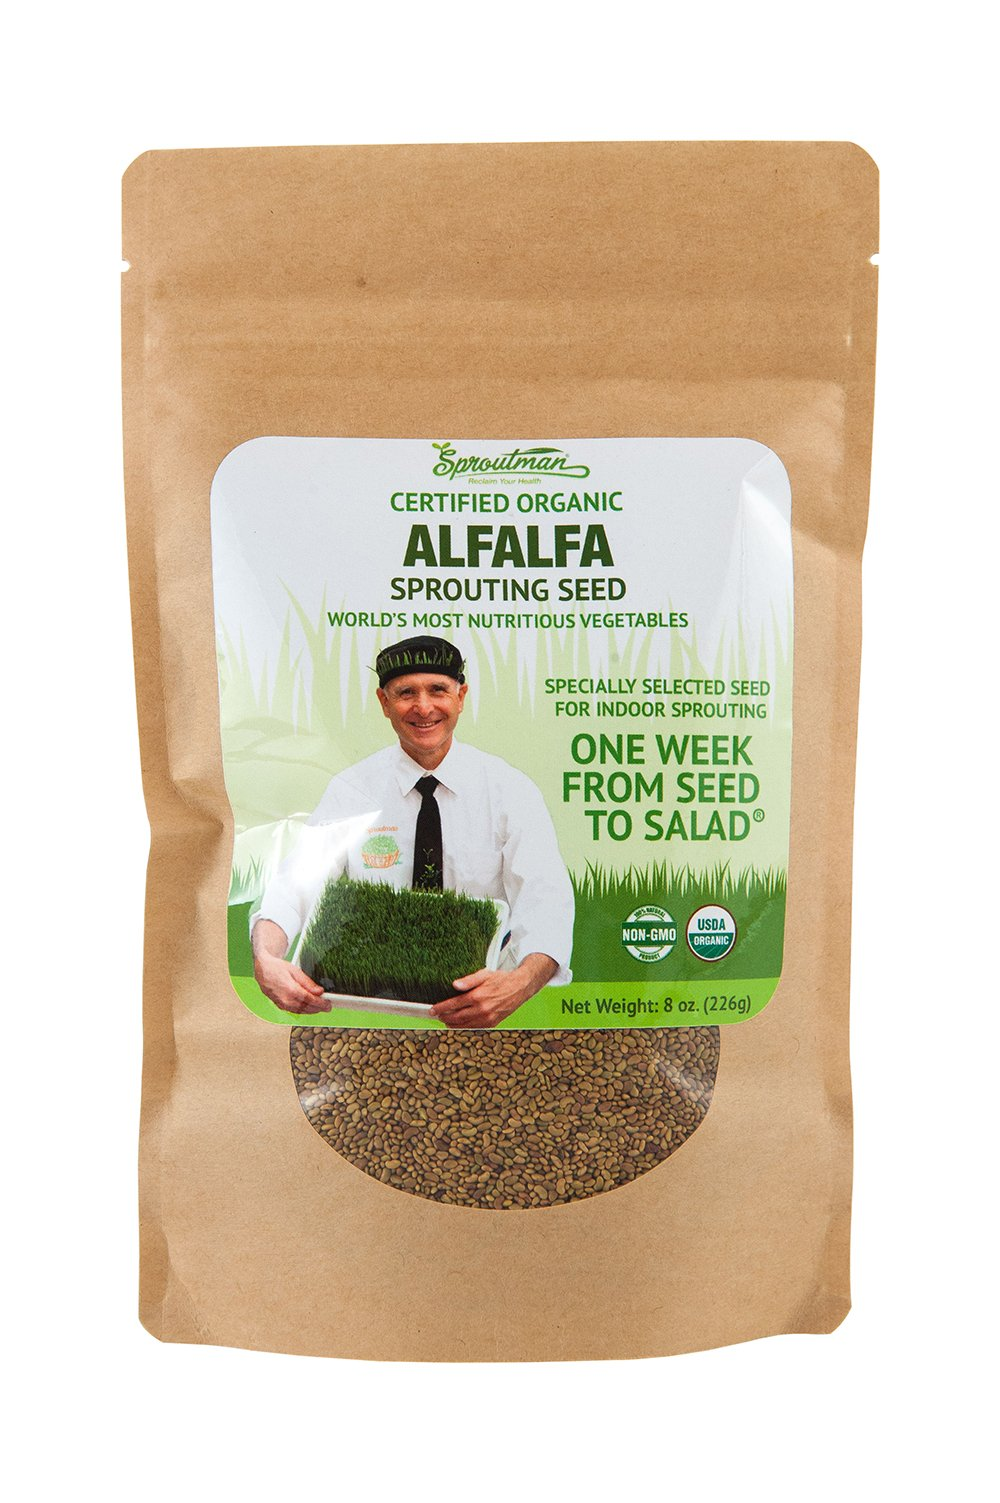 Sproutman 8oz Organic Alfalfa Sprouting Seed – Alfalfa Seeds for Sprouting, High Germination, Non-GMO, Certified Organic